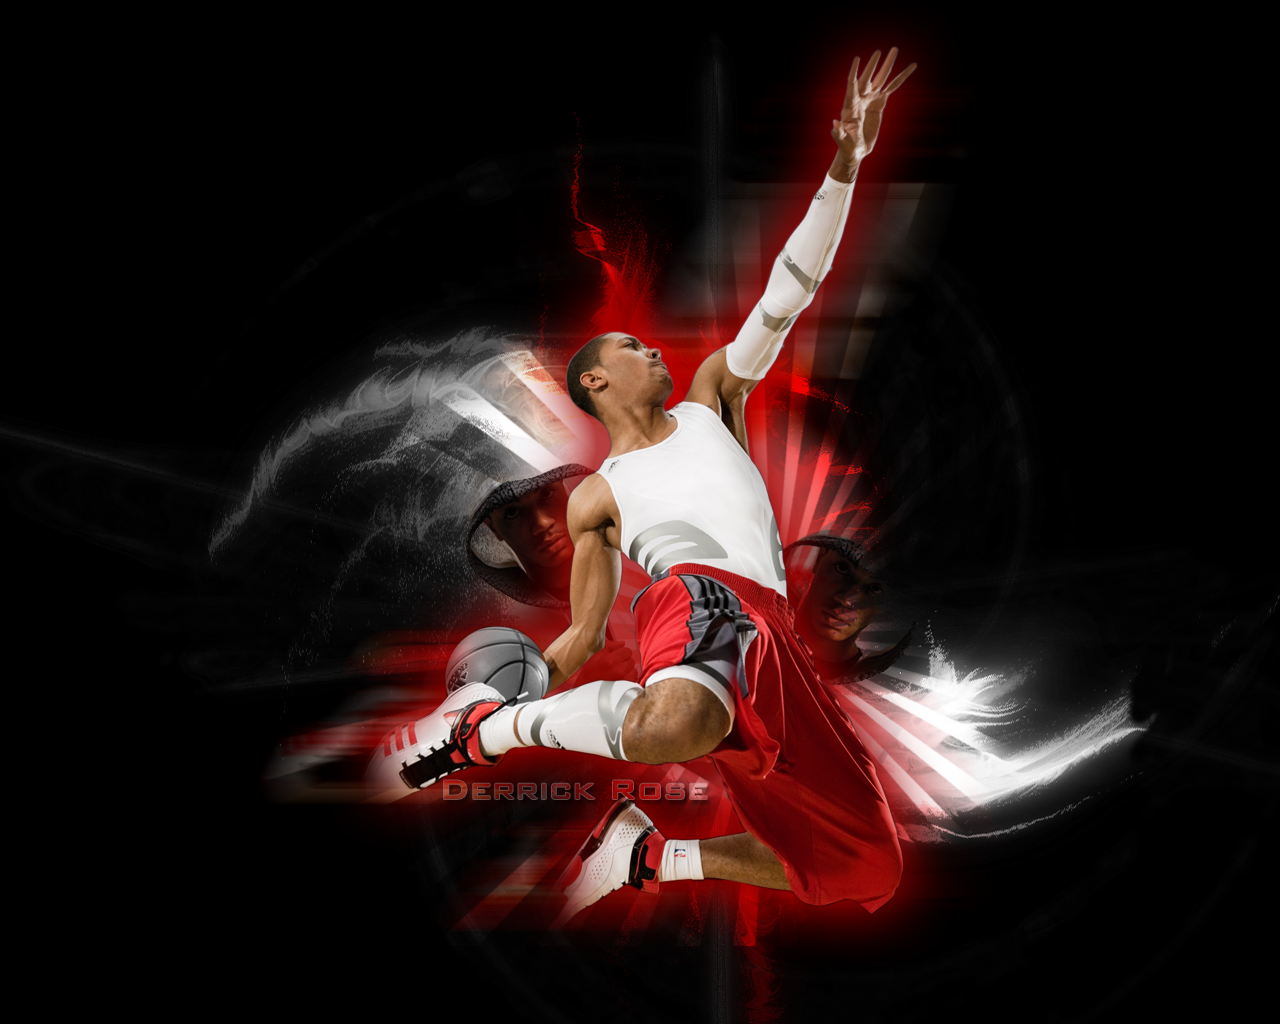 Derrick Rose HD Wallpapers Latest HD Wallpapers 1280x1024